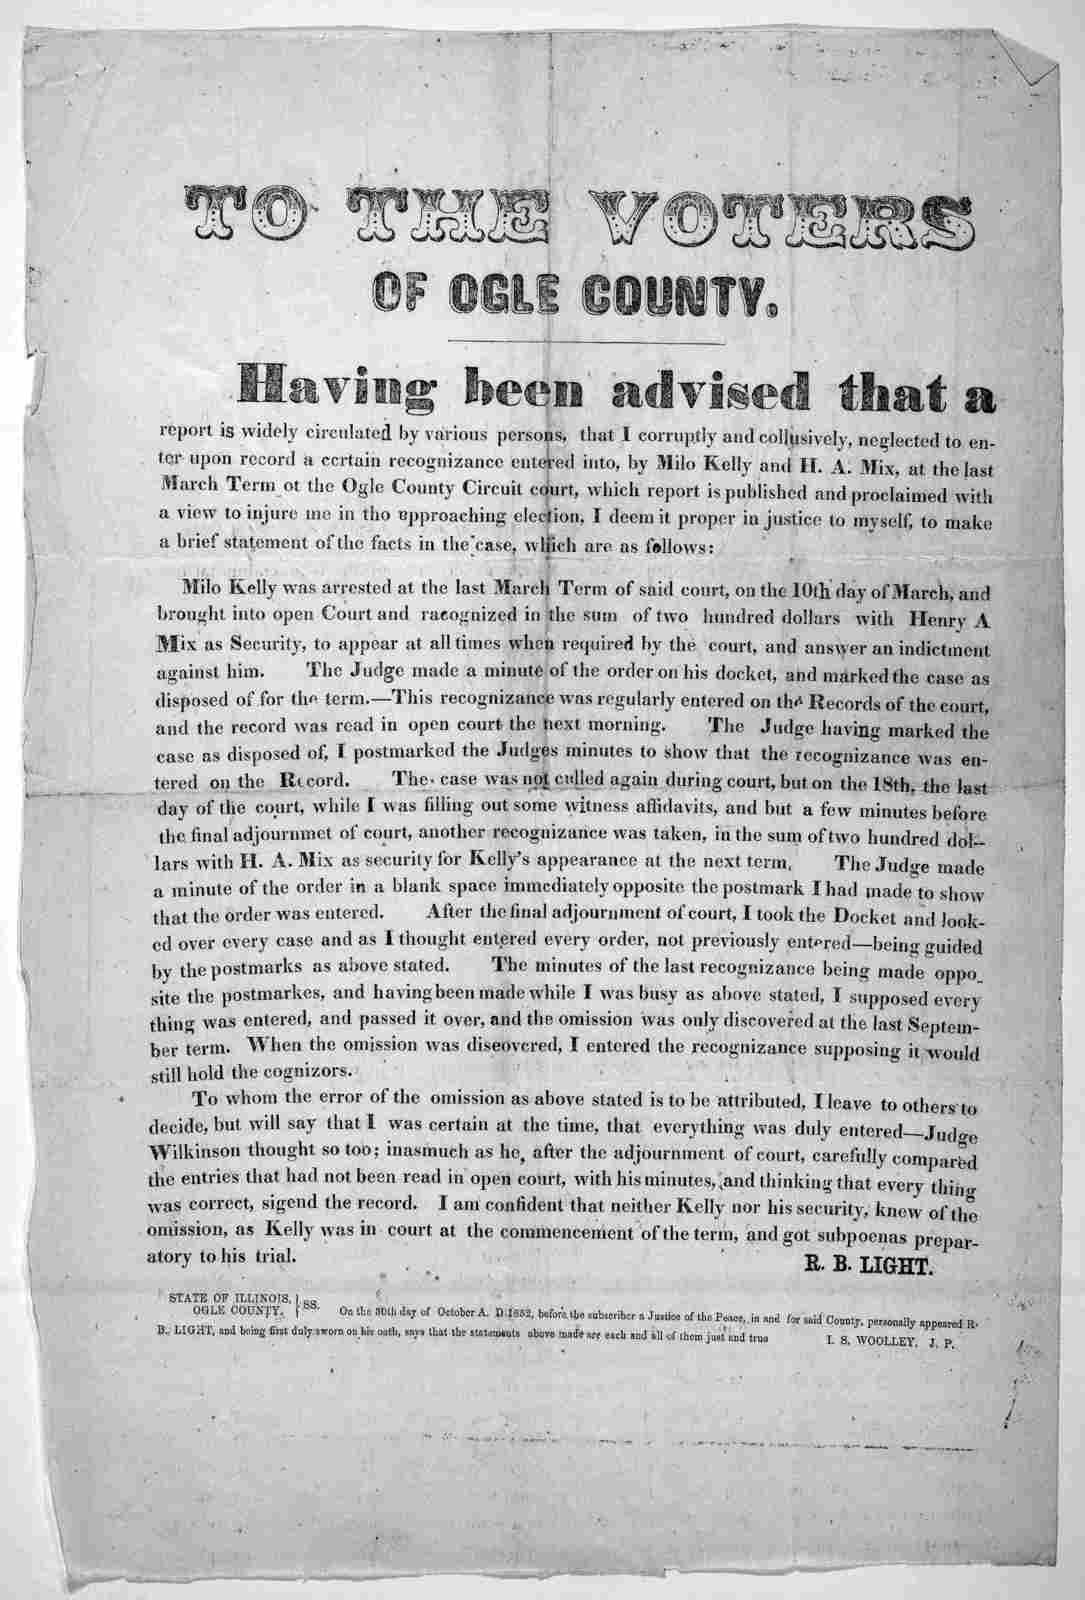 To the voters of Ogle County. Having been advised that a report is widely circulated by various persons, that I corruptly and collusively, neglected to enter upon record a certain recognizance entered into, by Milo Kelly and H. A. Mix, at the la